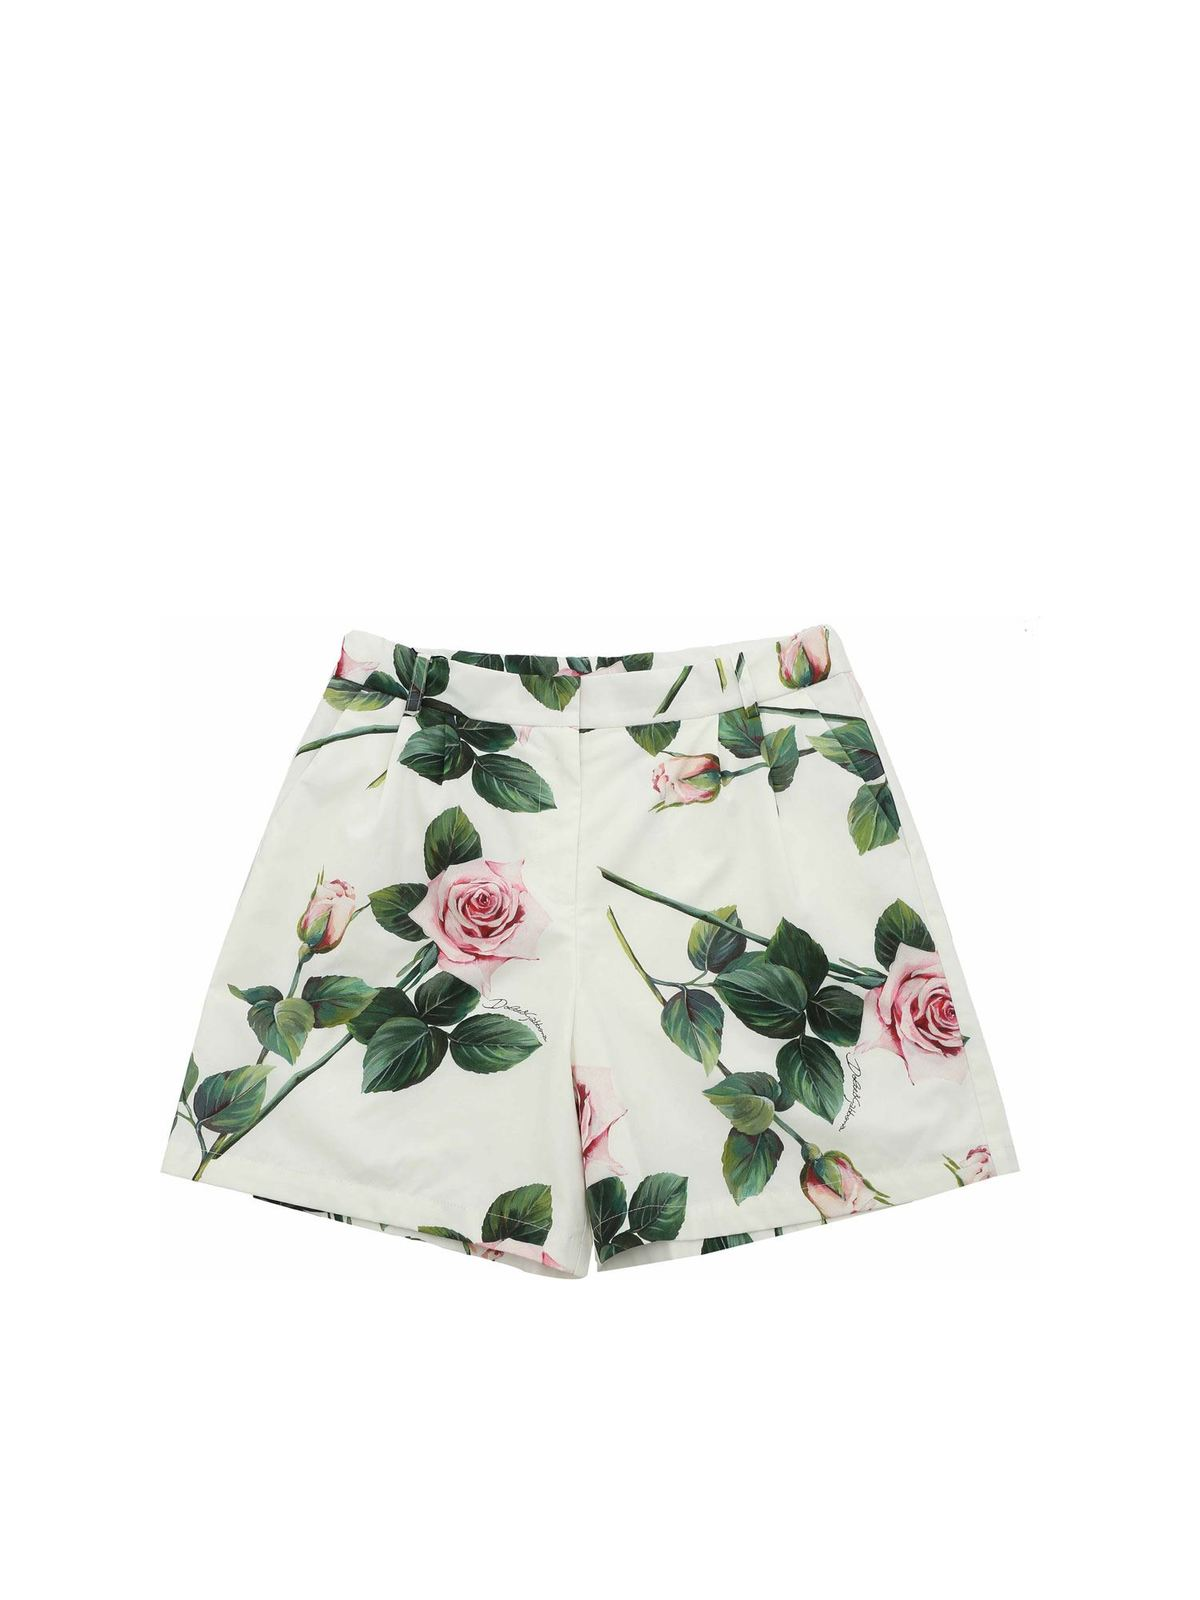 DOLCE & GABBANA JR TROPICAL ROSE PRINT SHORTS IN WHITE